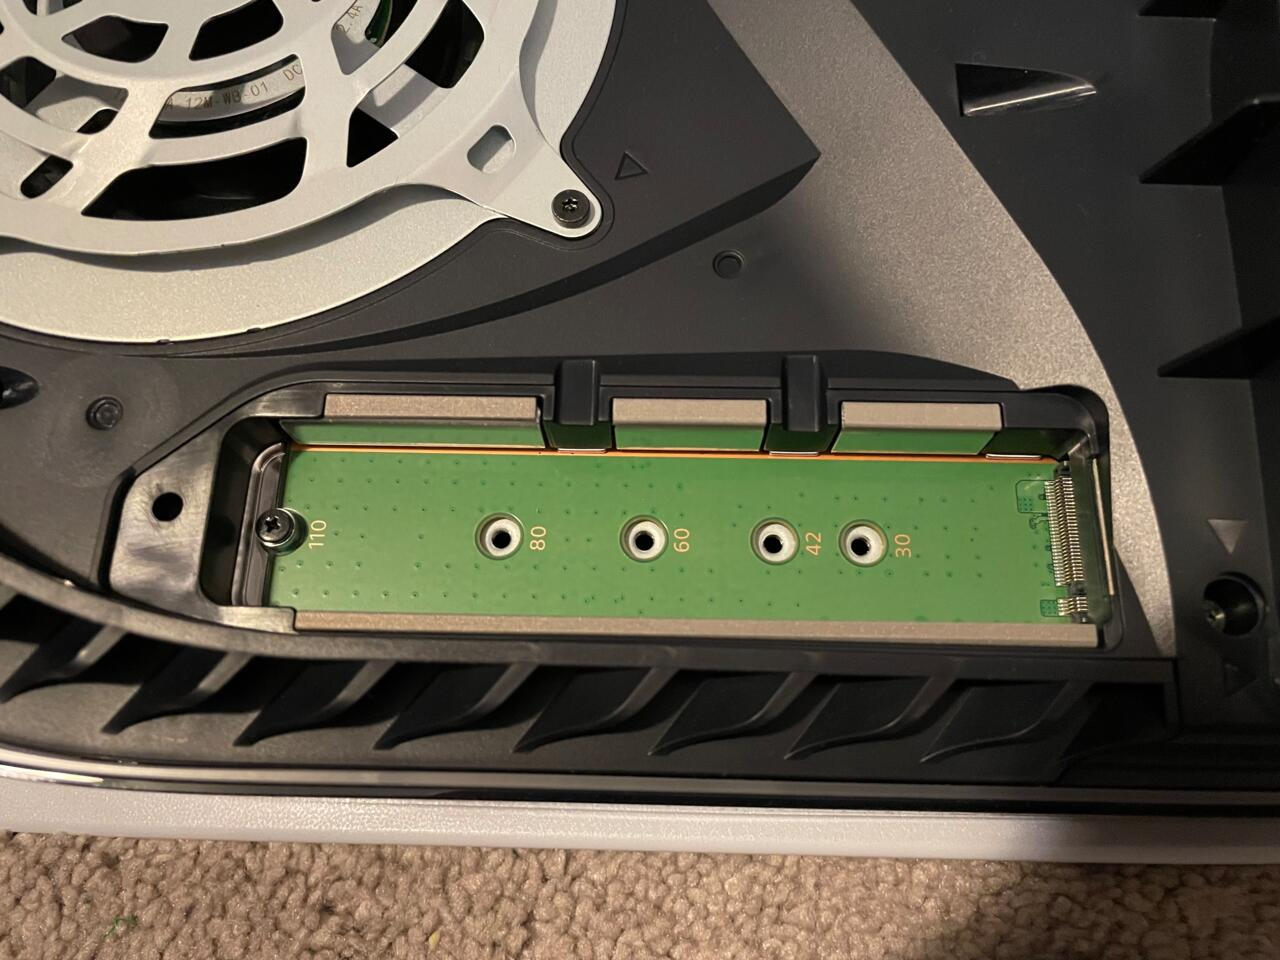 There are five grooves. You need to find the one that matches the length of your SSD.